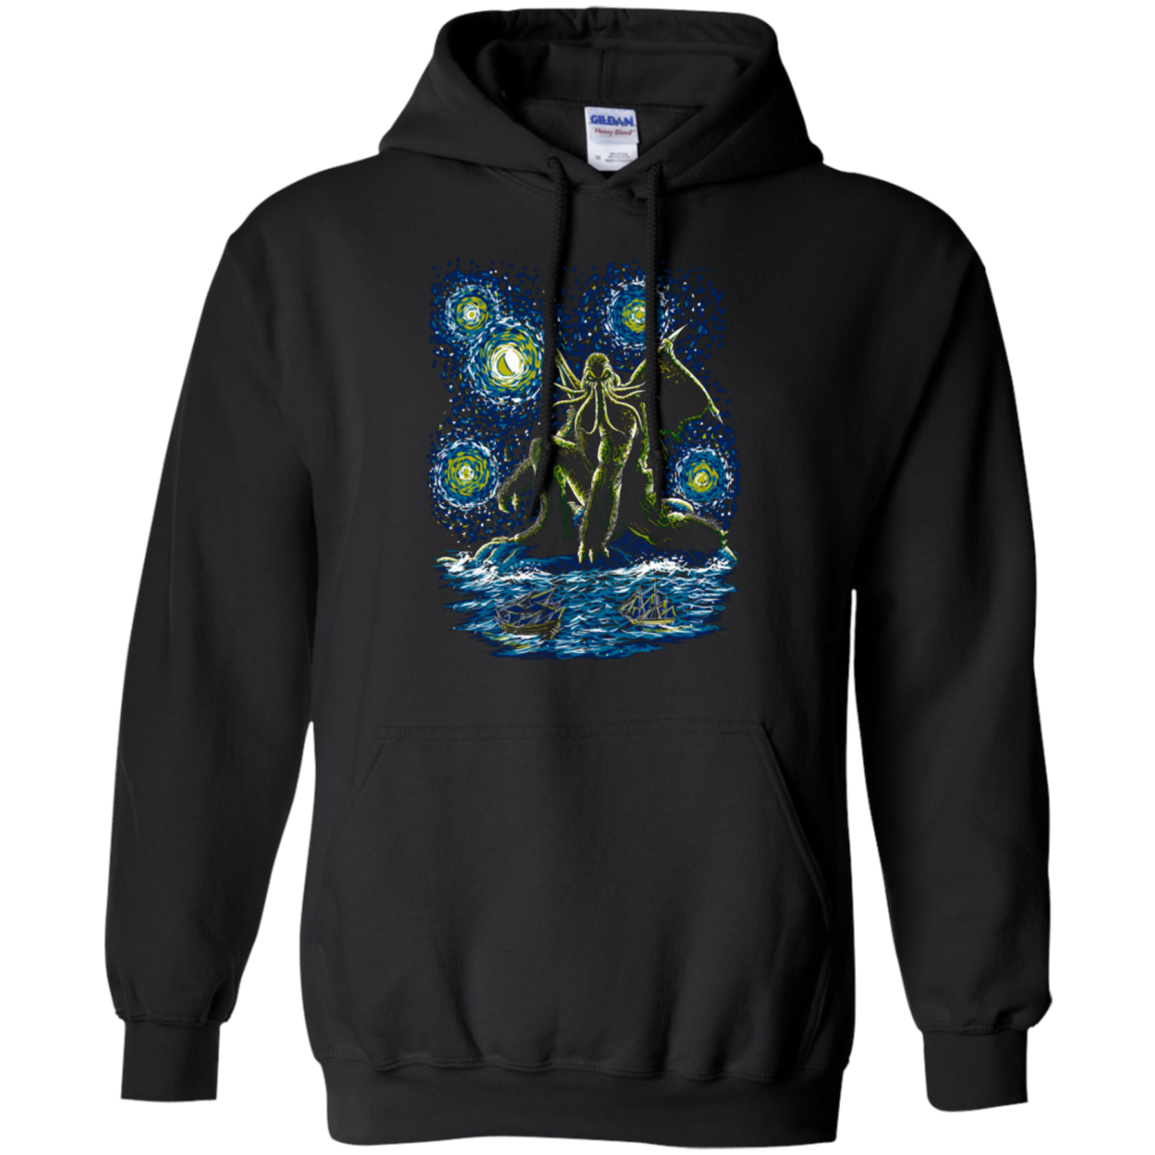 Night of Cthulhu Pullover Hoodie